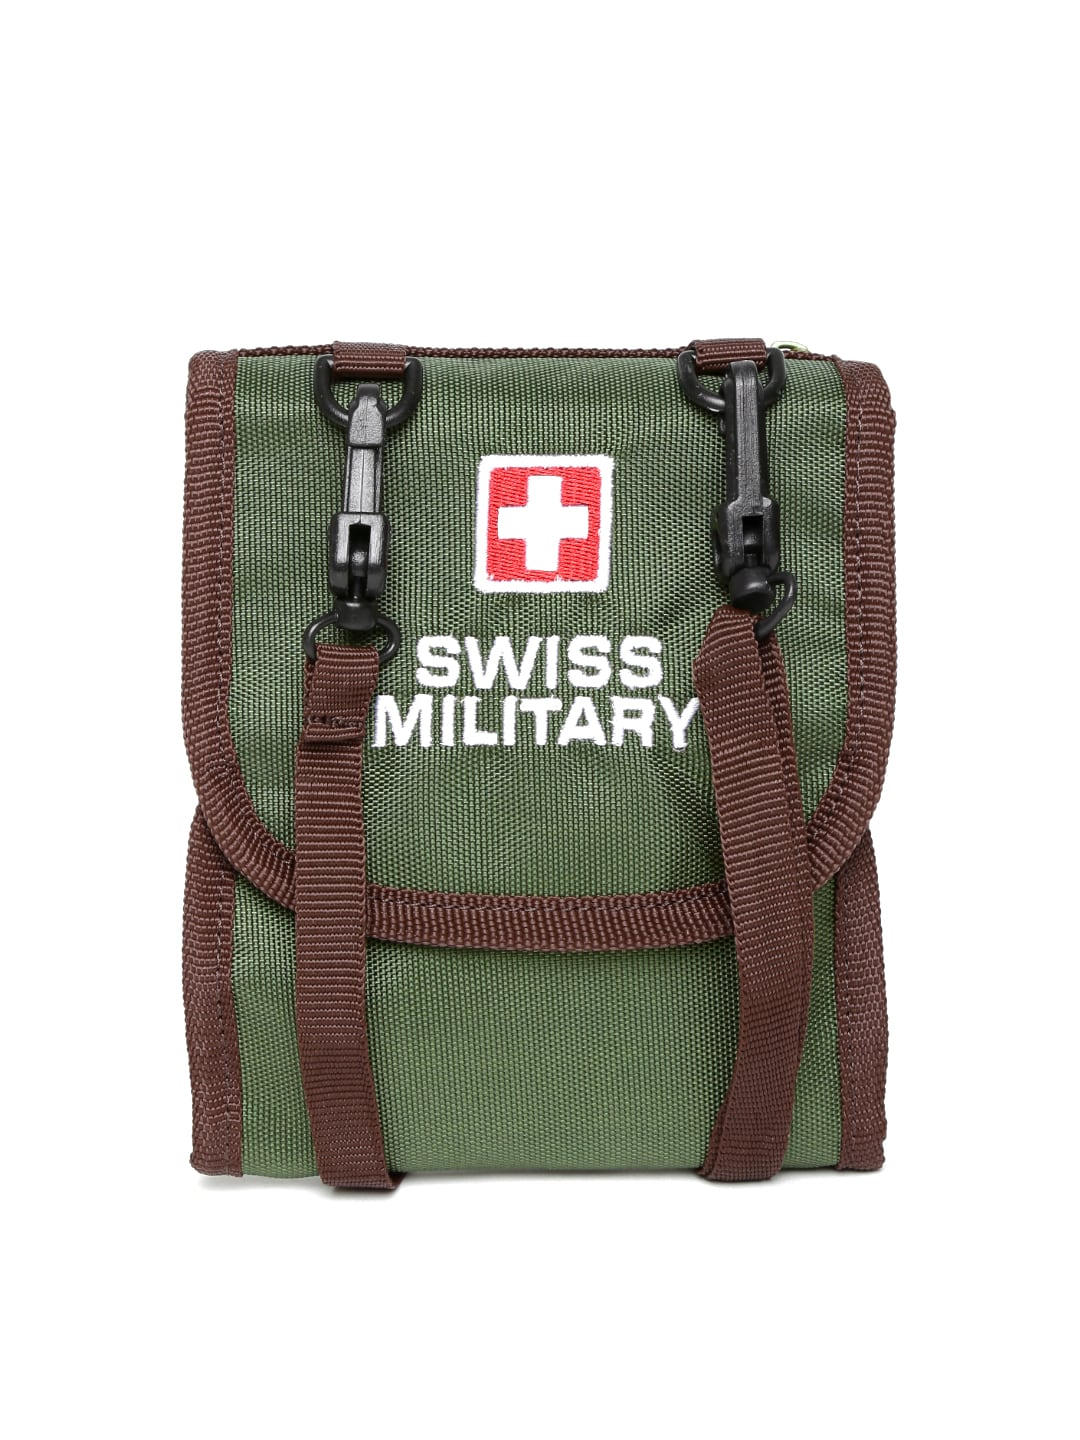 85d82bf04284 Swiss Military - Buy Swiss Military Accessories Online